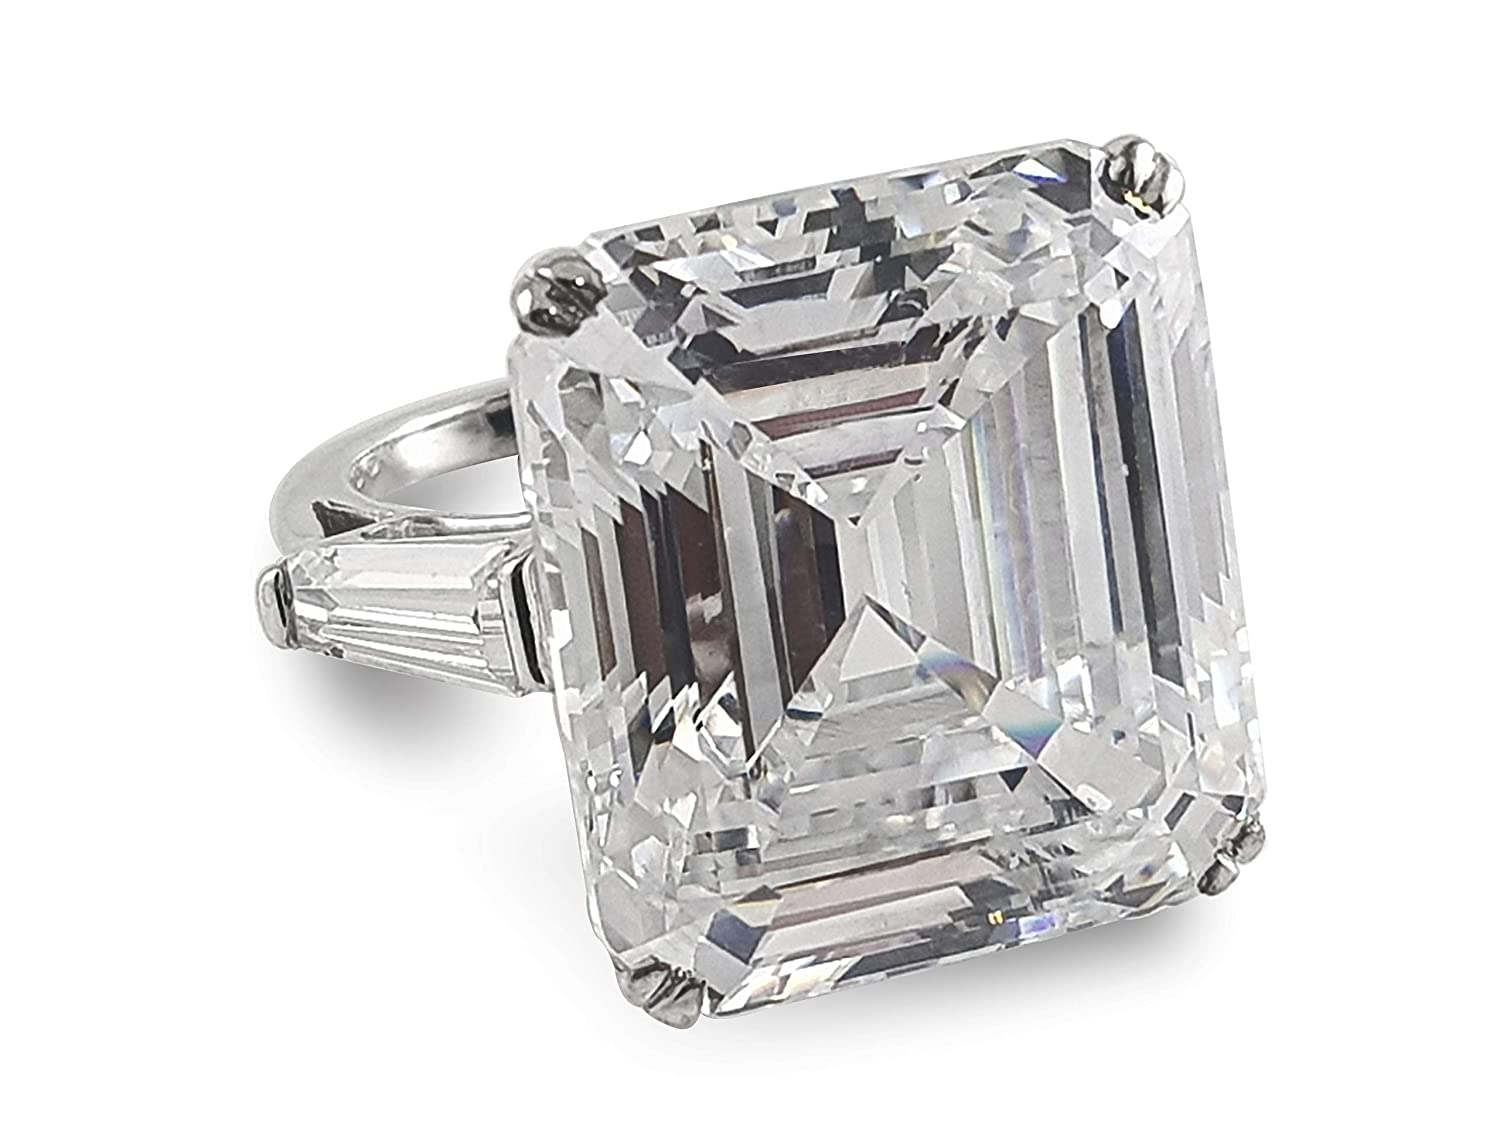 Adastra Jewelry 925 Sterling Silver 35 ct Asscher Baguette Elizabeth Taylor inspired Solitaire engagement Ring Rapunzel Collection Jewelry Size 12 and half sizes